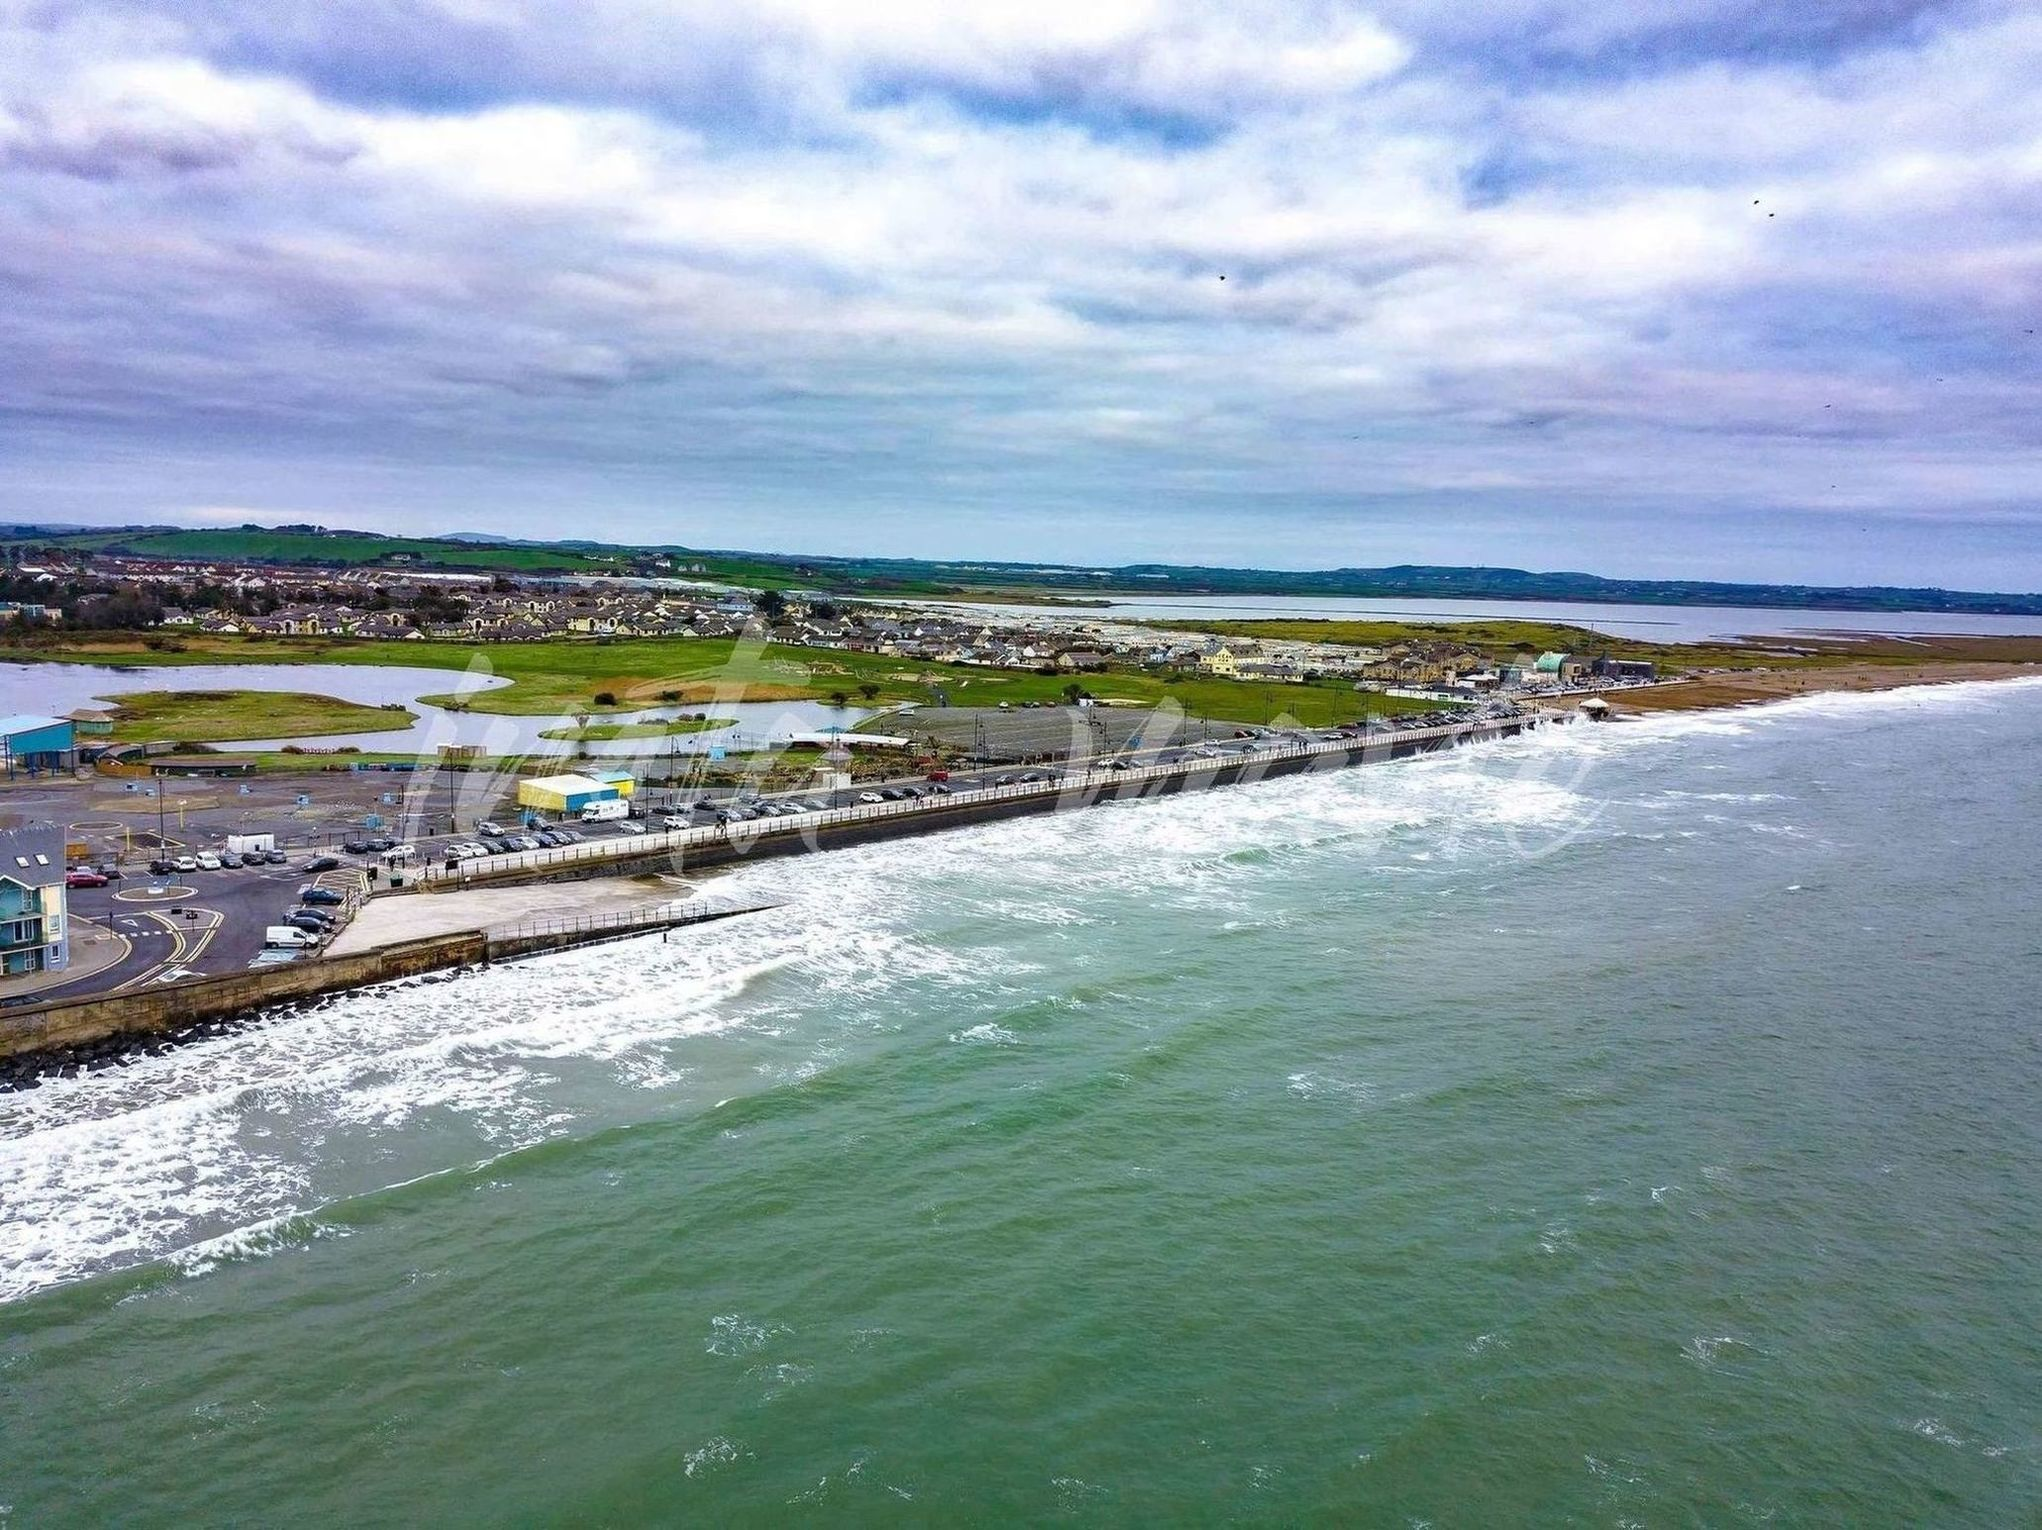 10 Best Tramore Hotels, Ireland (From $89) - confx.co.uk